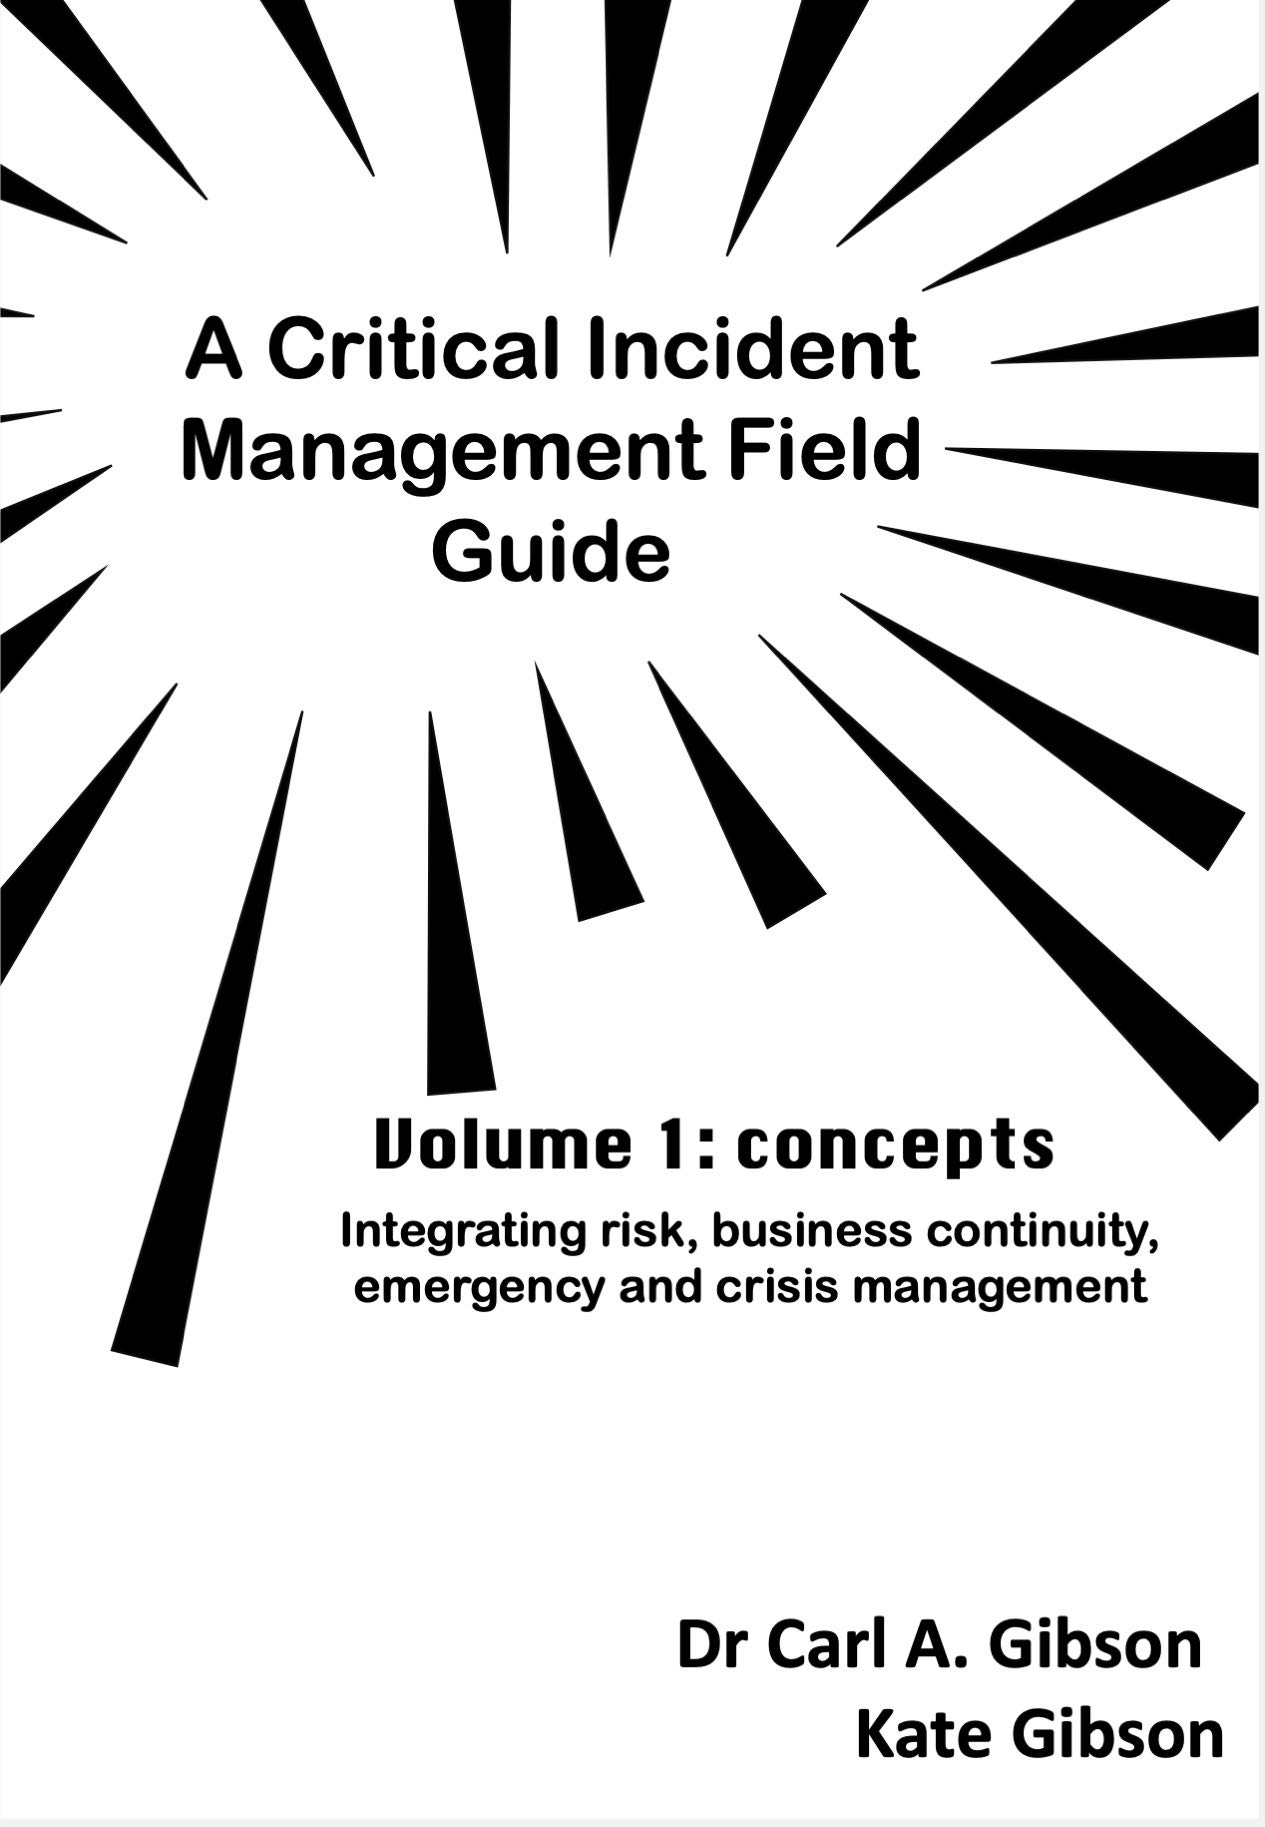 A Critical Incident Field Guide Volume 1 Concepts: Integrating risk, business continuity, emergency, and crisis management